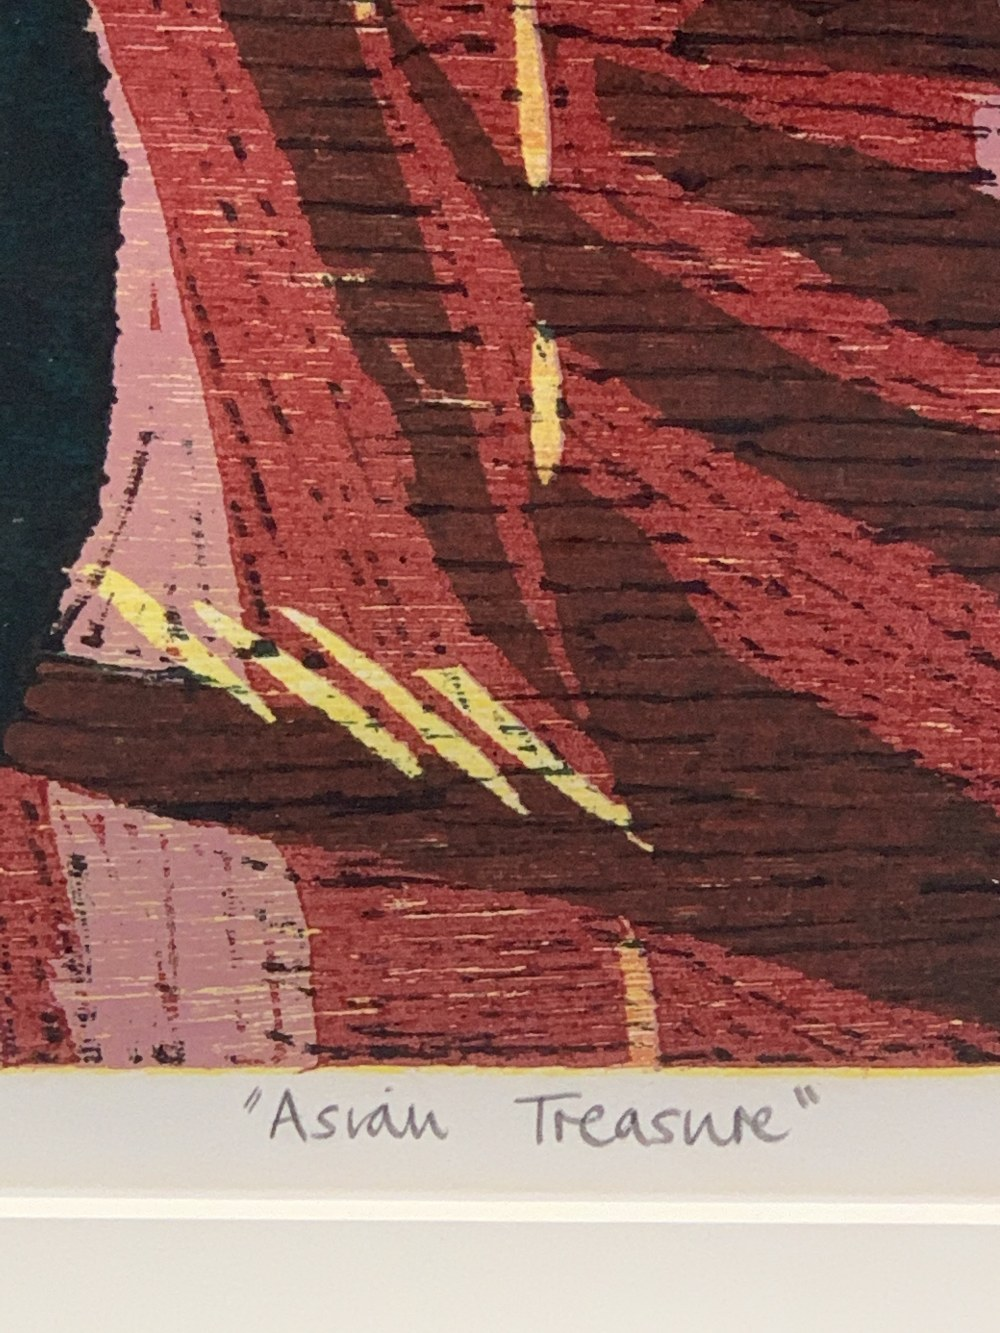 SARA PITMAN limited edition print - titled 'Asian Treasure' 2/6 signed and dated April '85, 55.5 x - Image 2 of 3